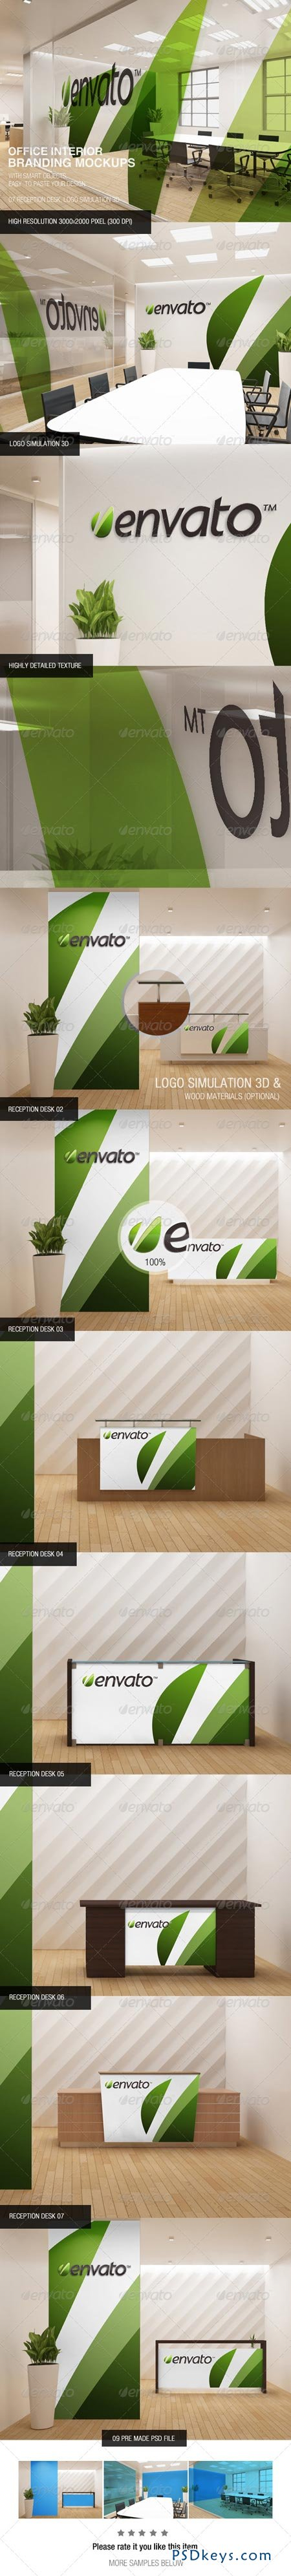 Office Interior Branding Mockups 6536196